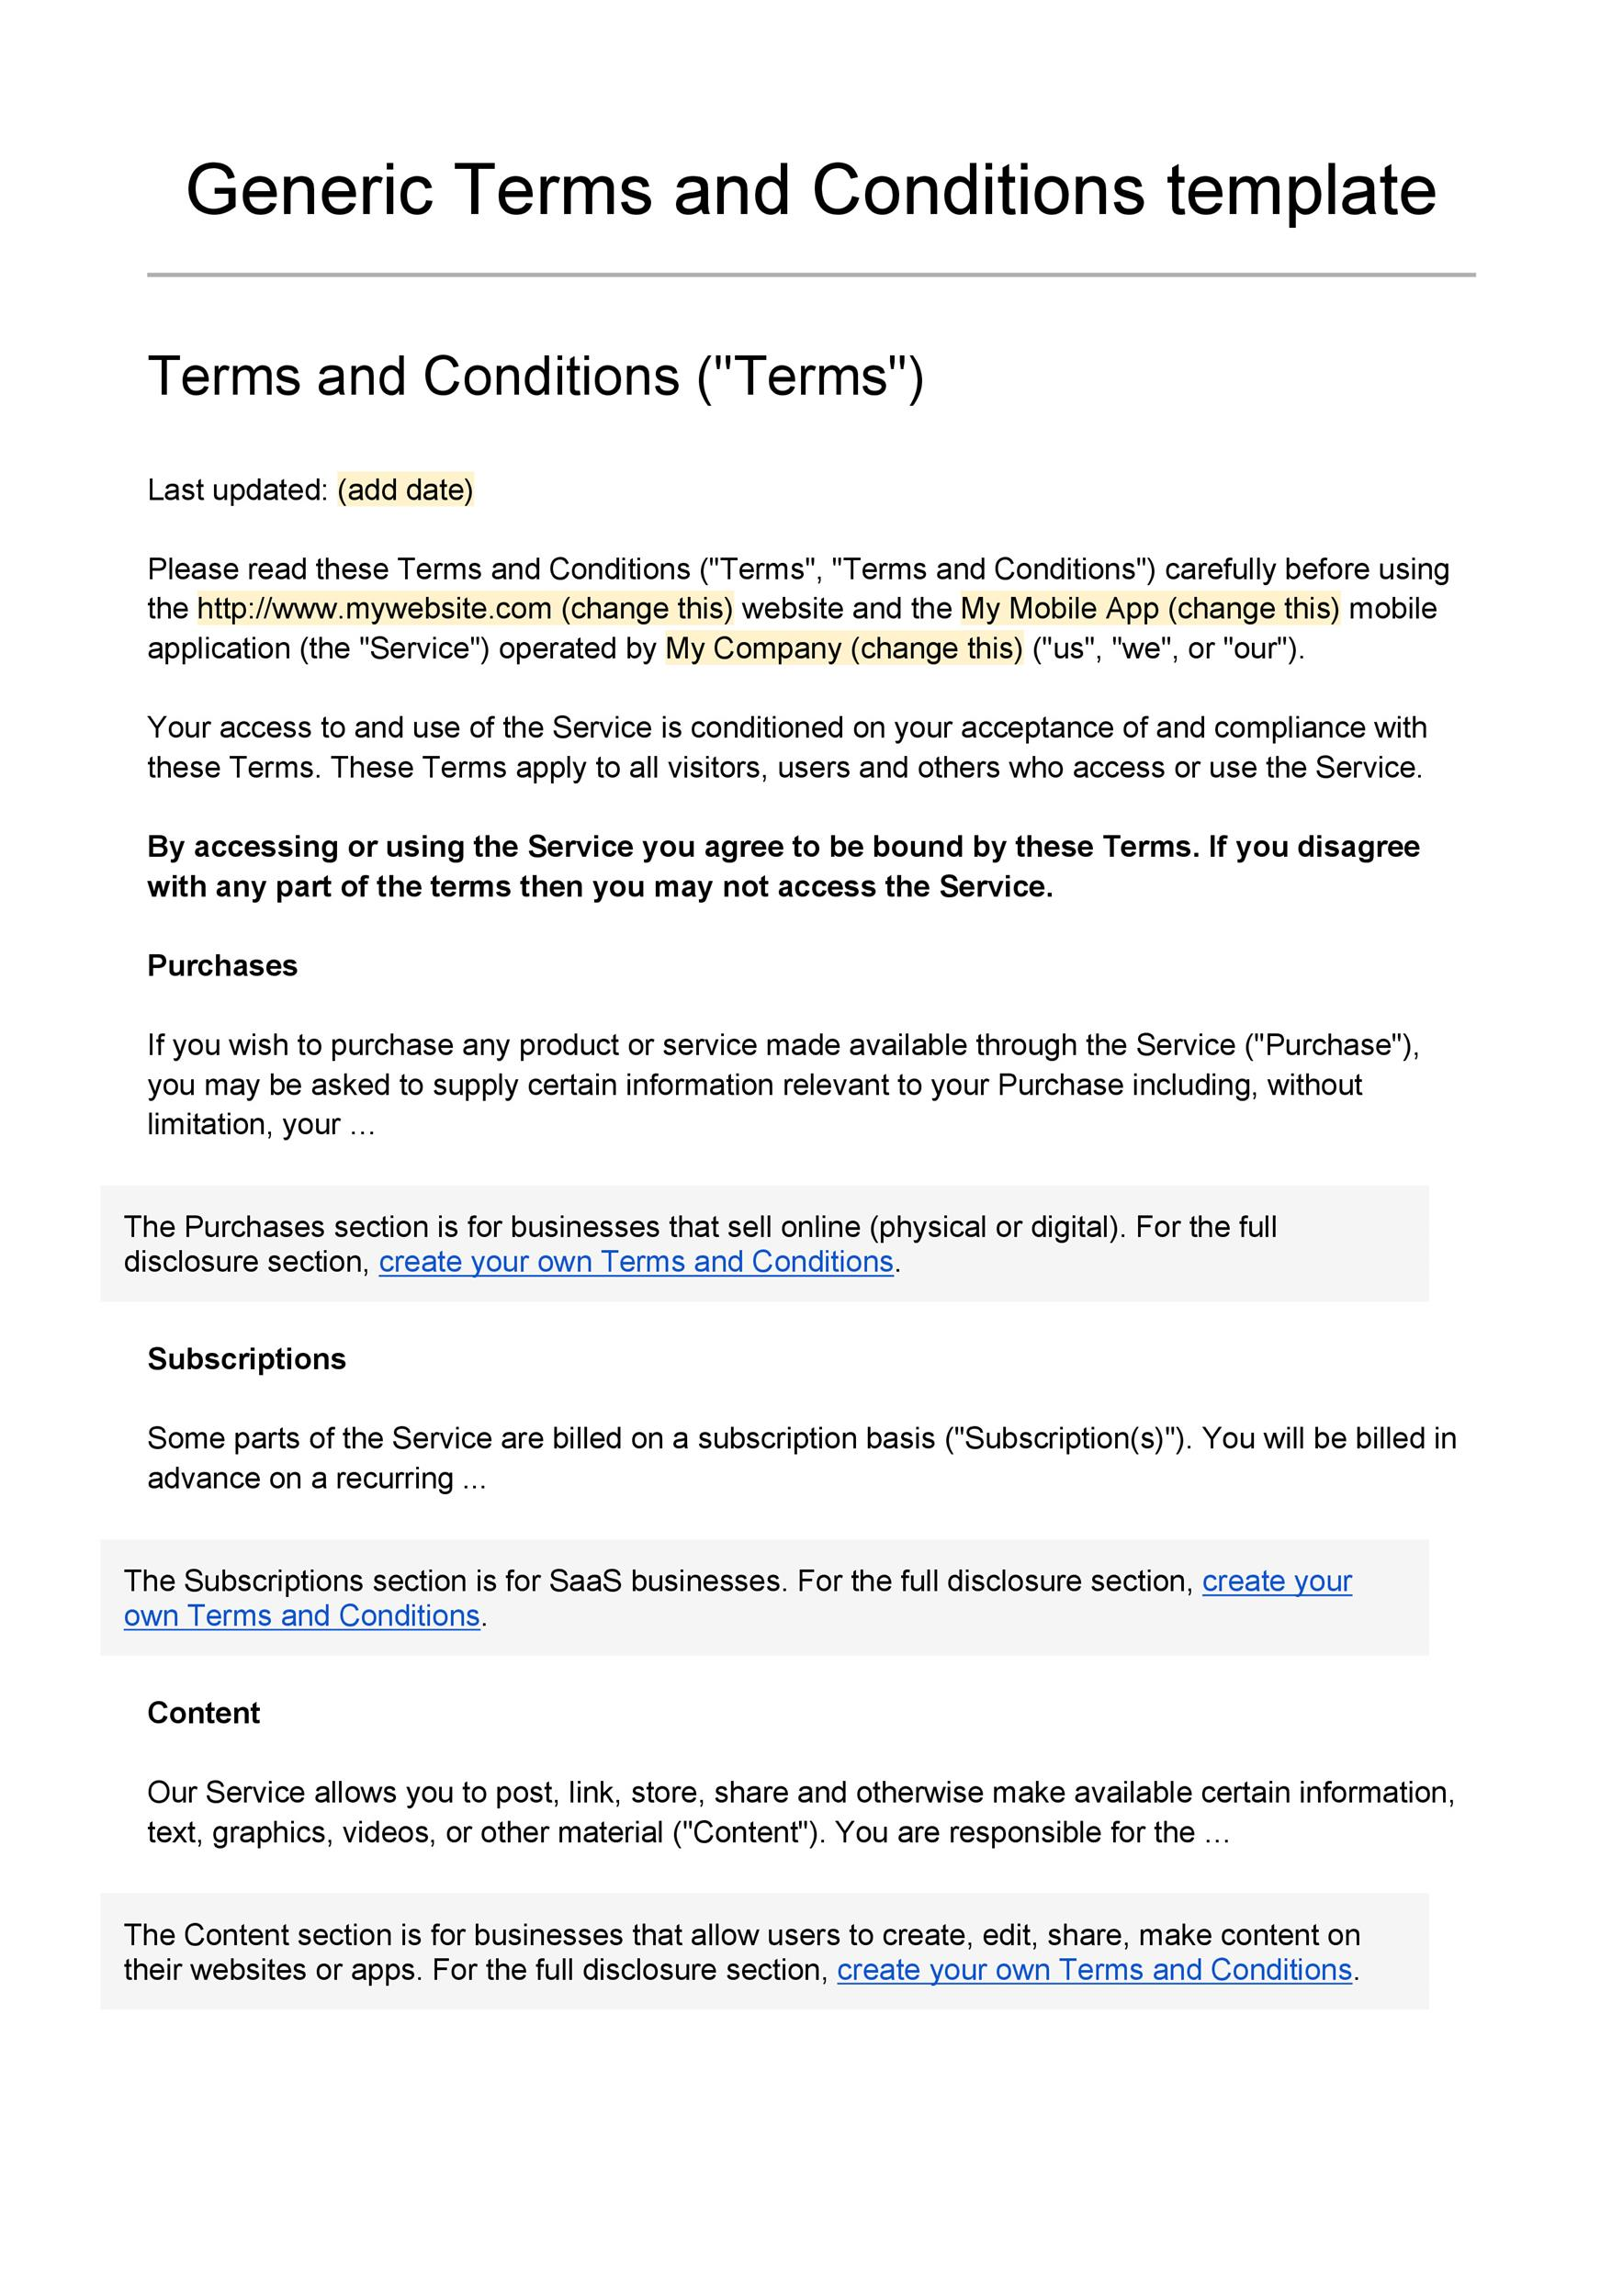 40 free terms and conditions templates for any website for Term and condition template